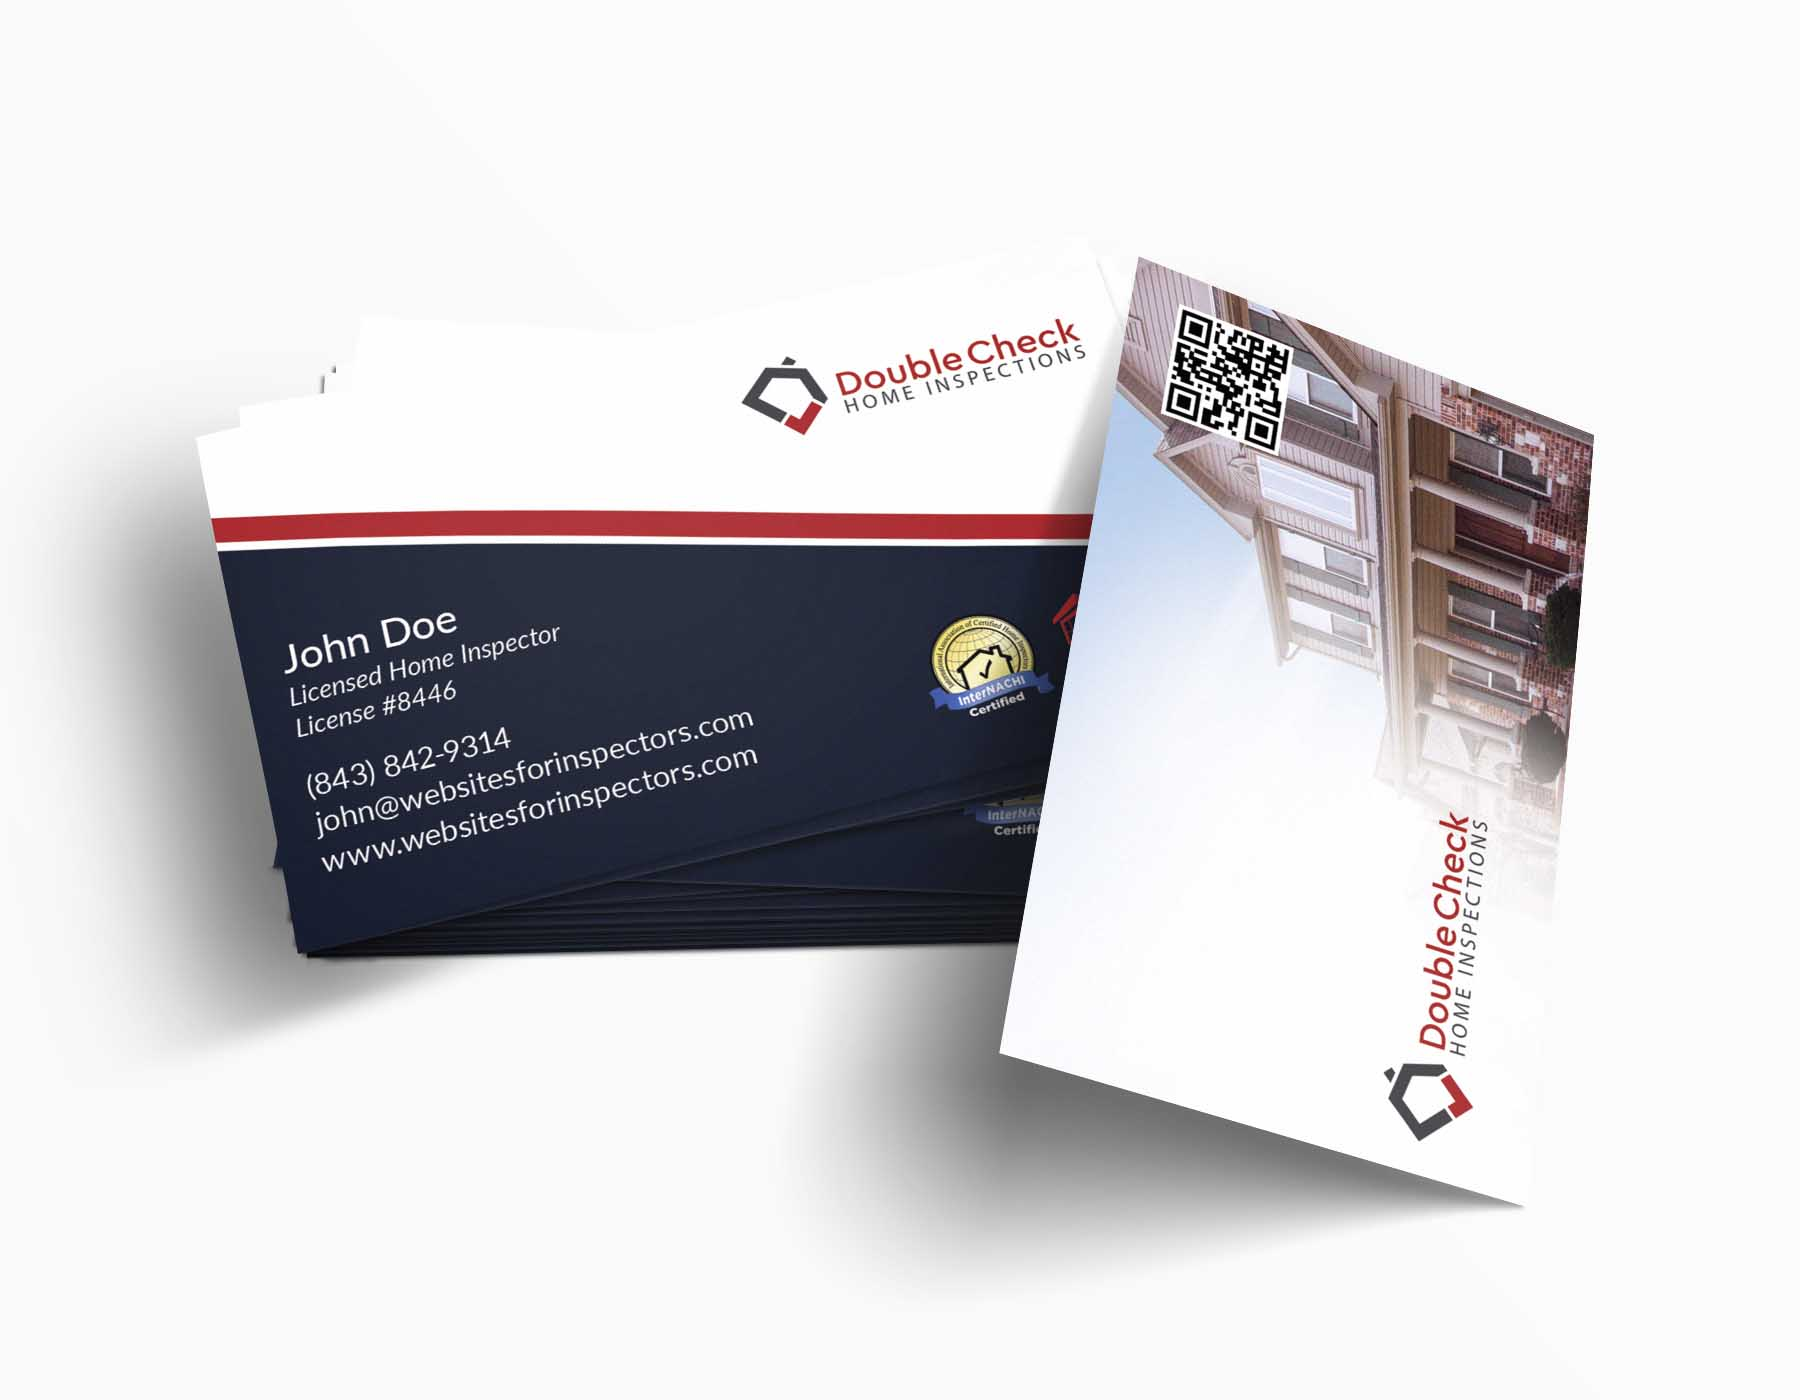 Professional Business Cards for Home Inspectors | from Visual Grace